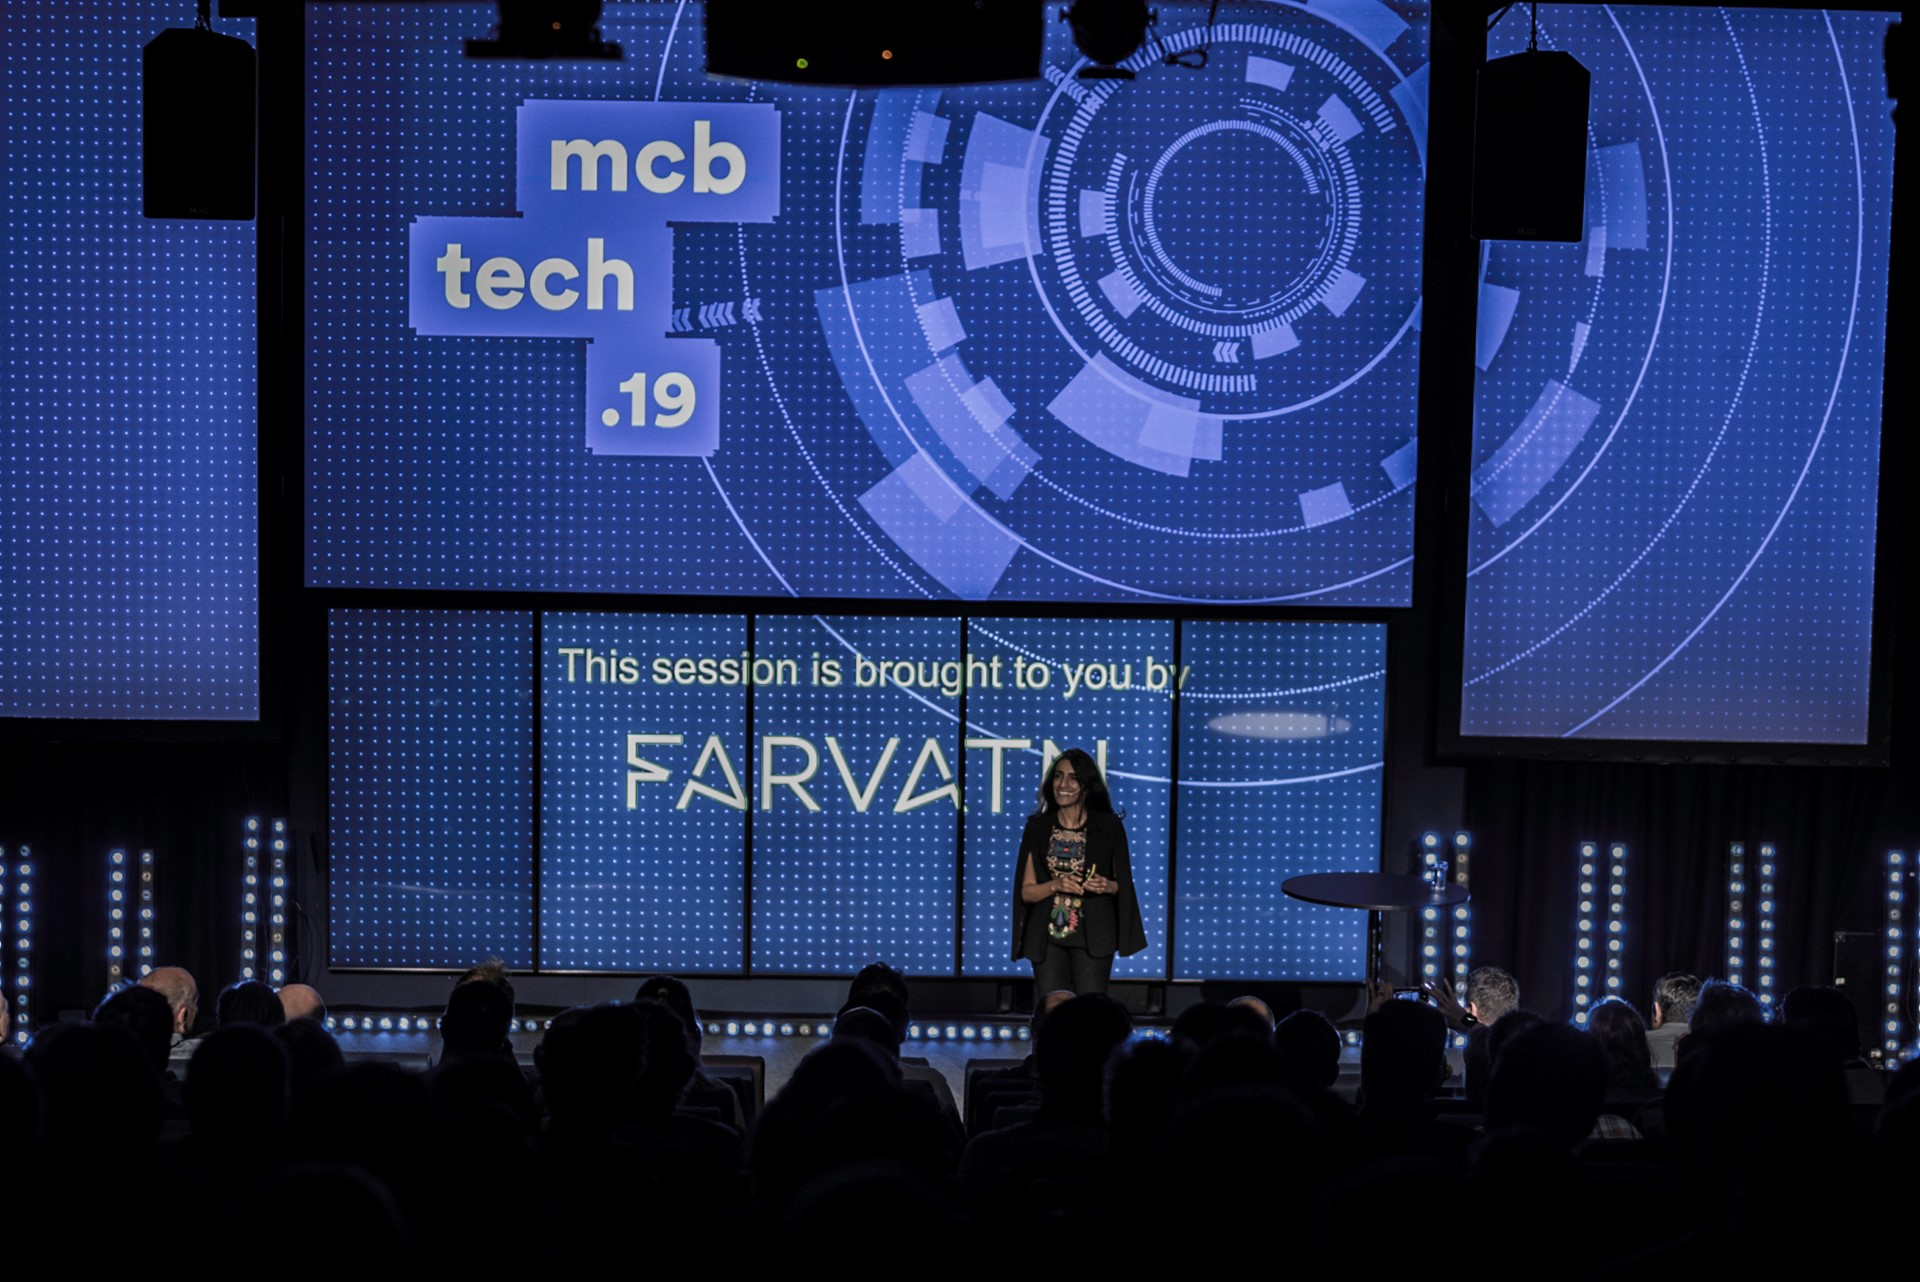 Dr Ayesha Khanna on stage at mcb tech, presenting Thriving in the Emerging Human-Technology Civilization